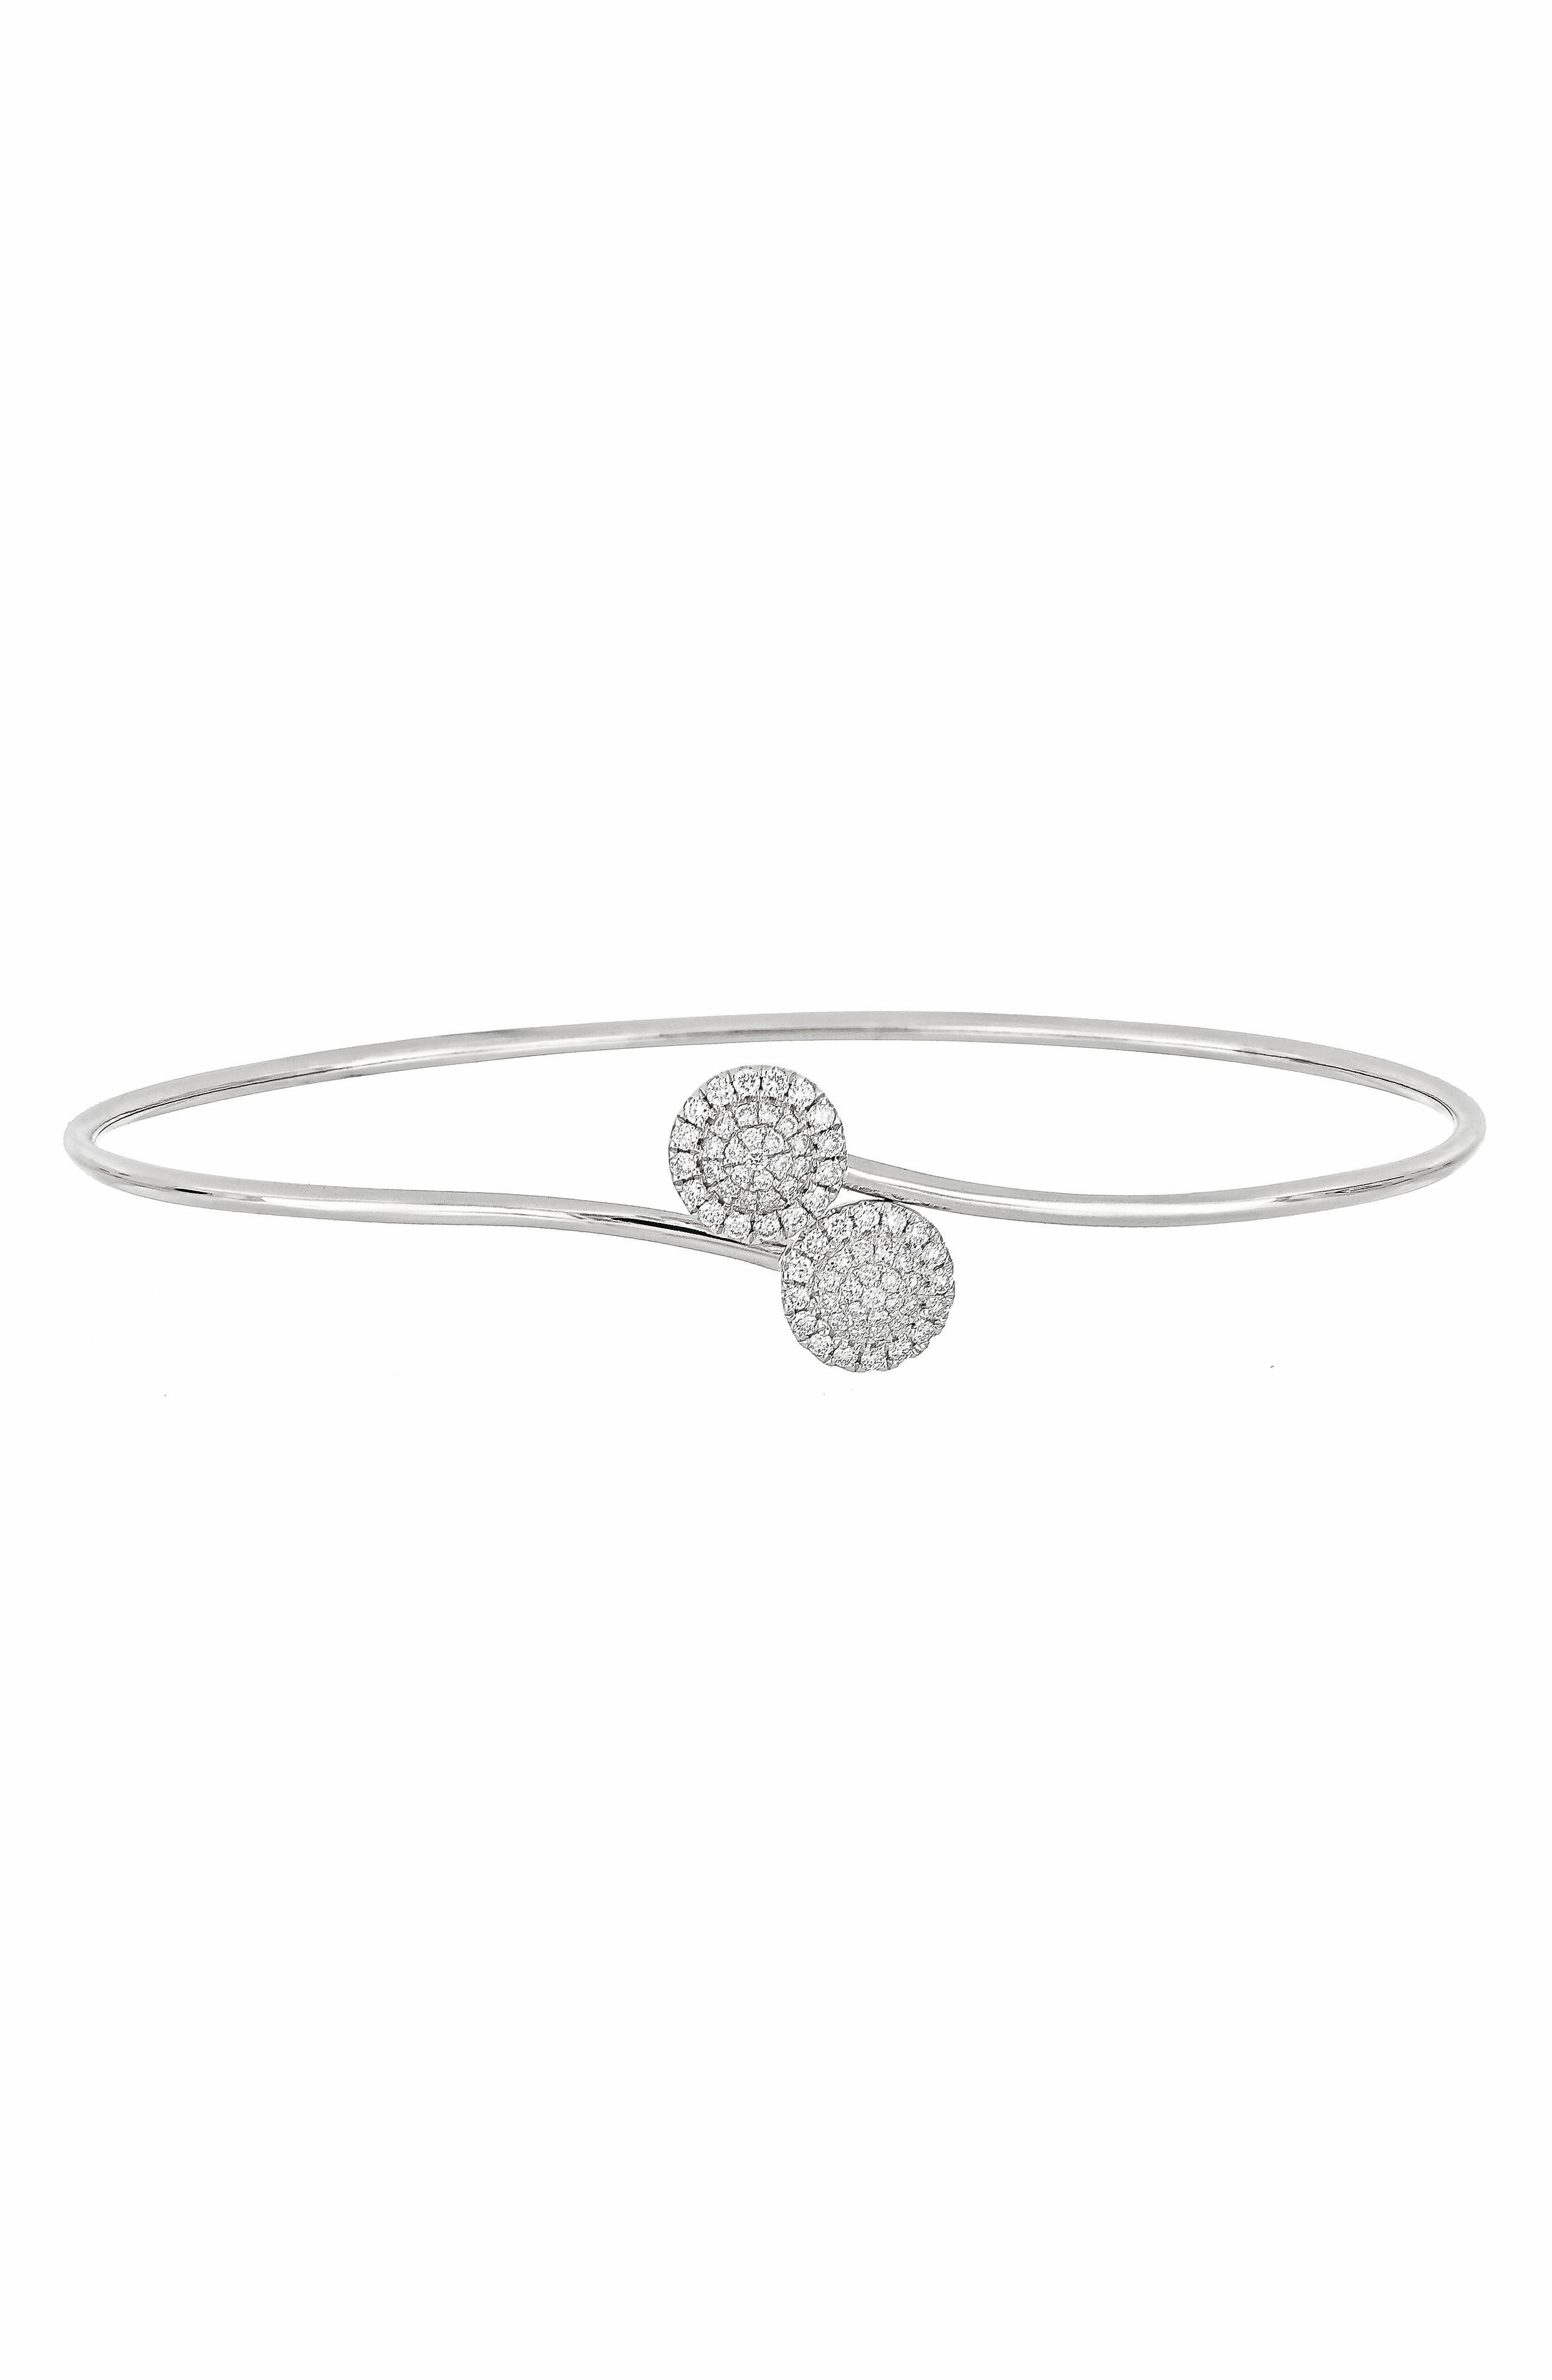 Flower Diamond Bangle,                             Main thumbnail 1, color,                             White Gold